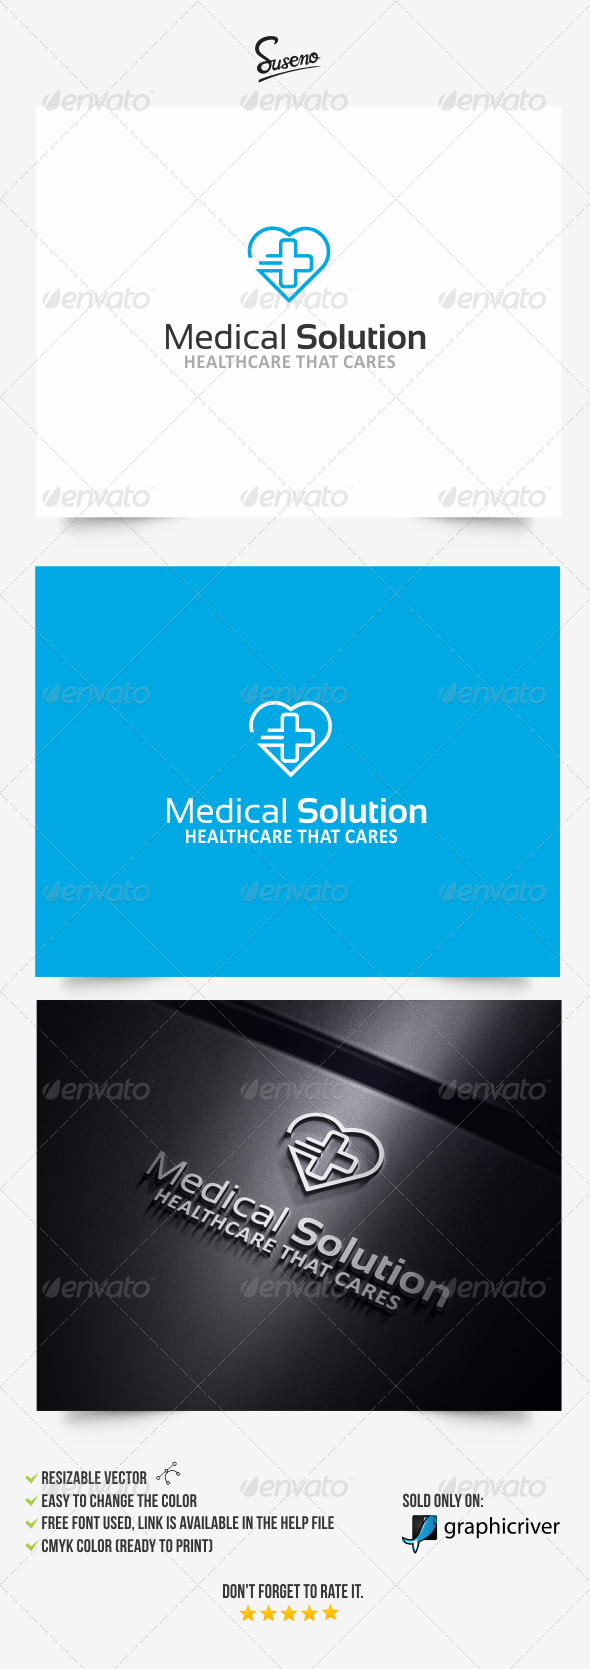 GraphicRiver Medical Solution logo 8180037